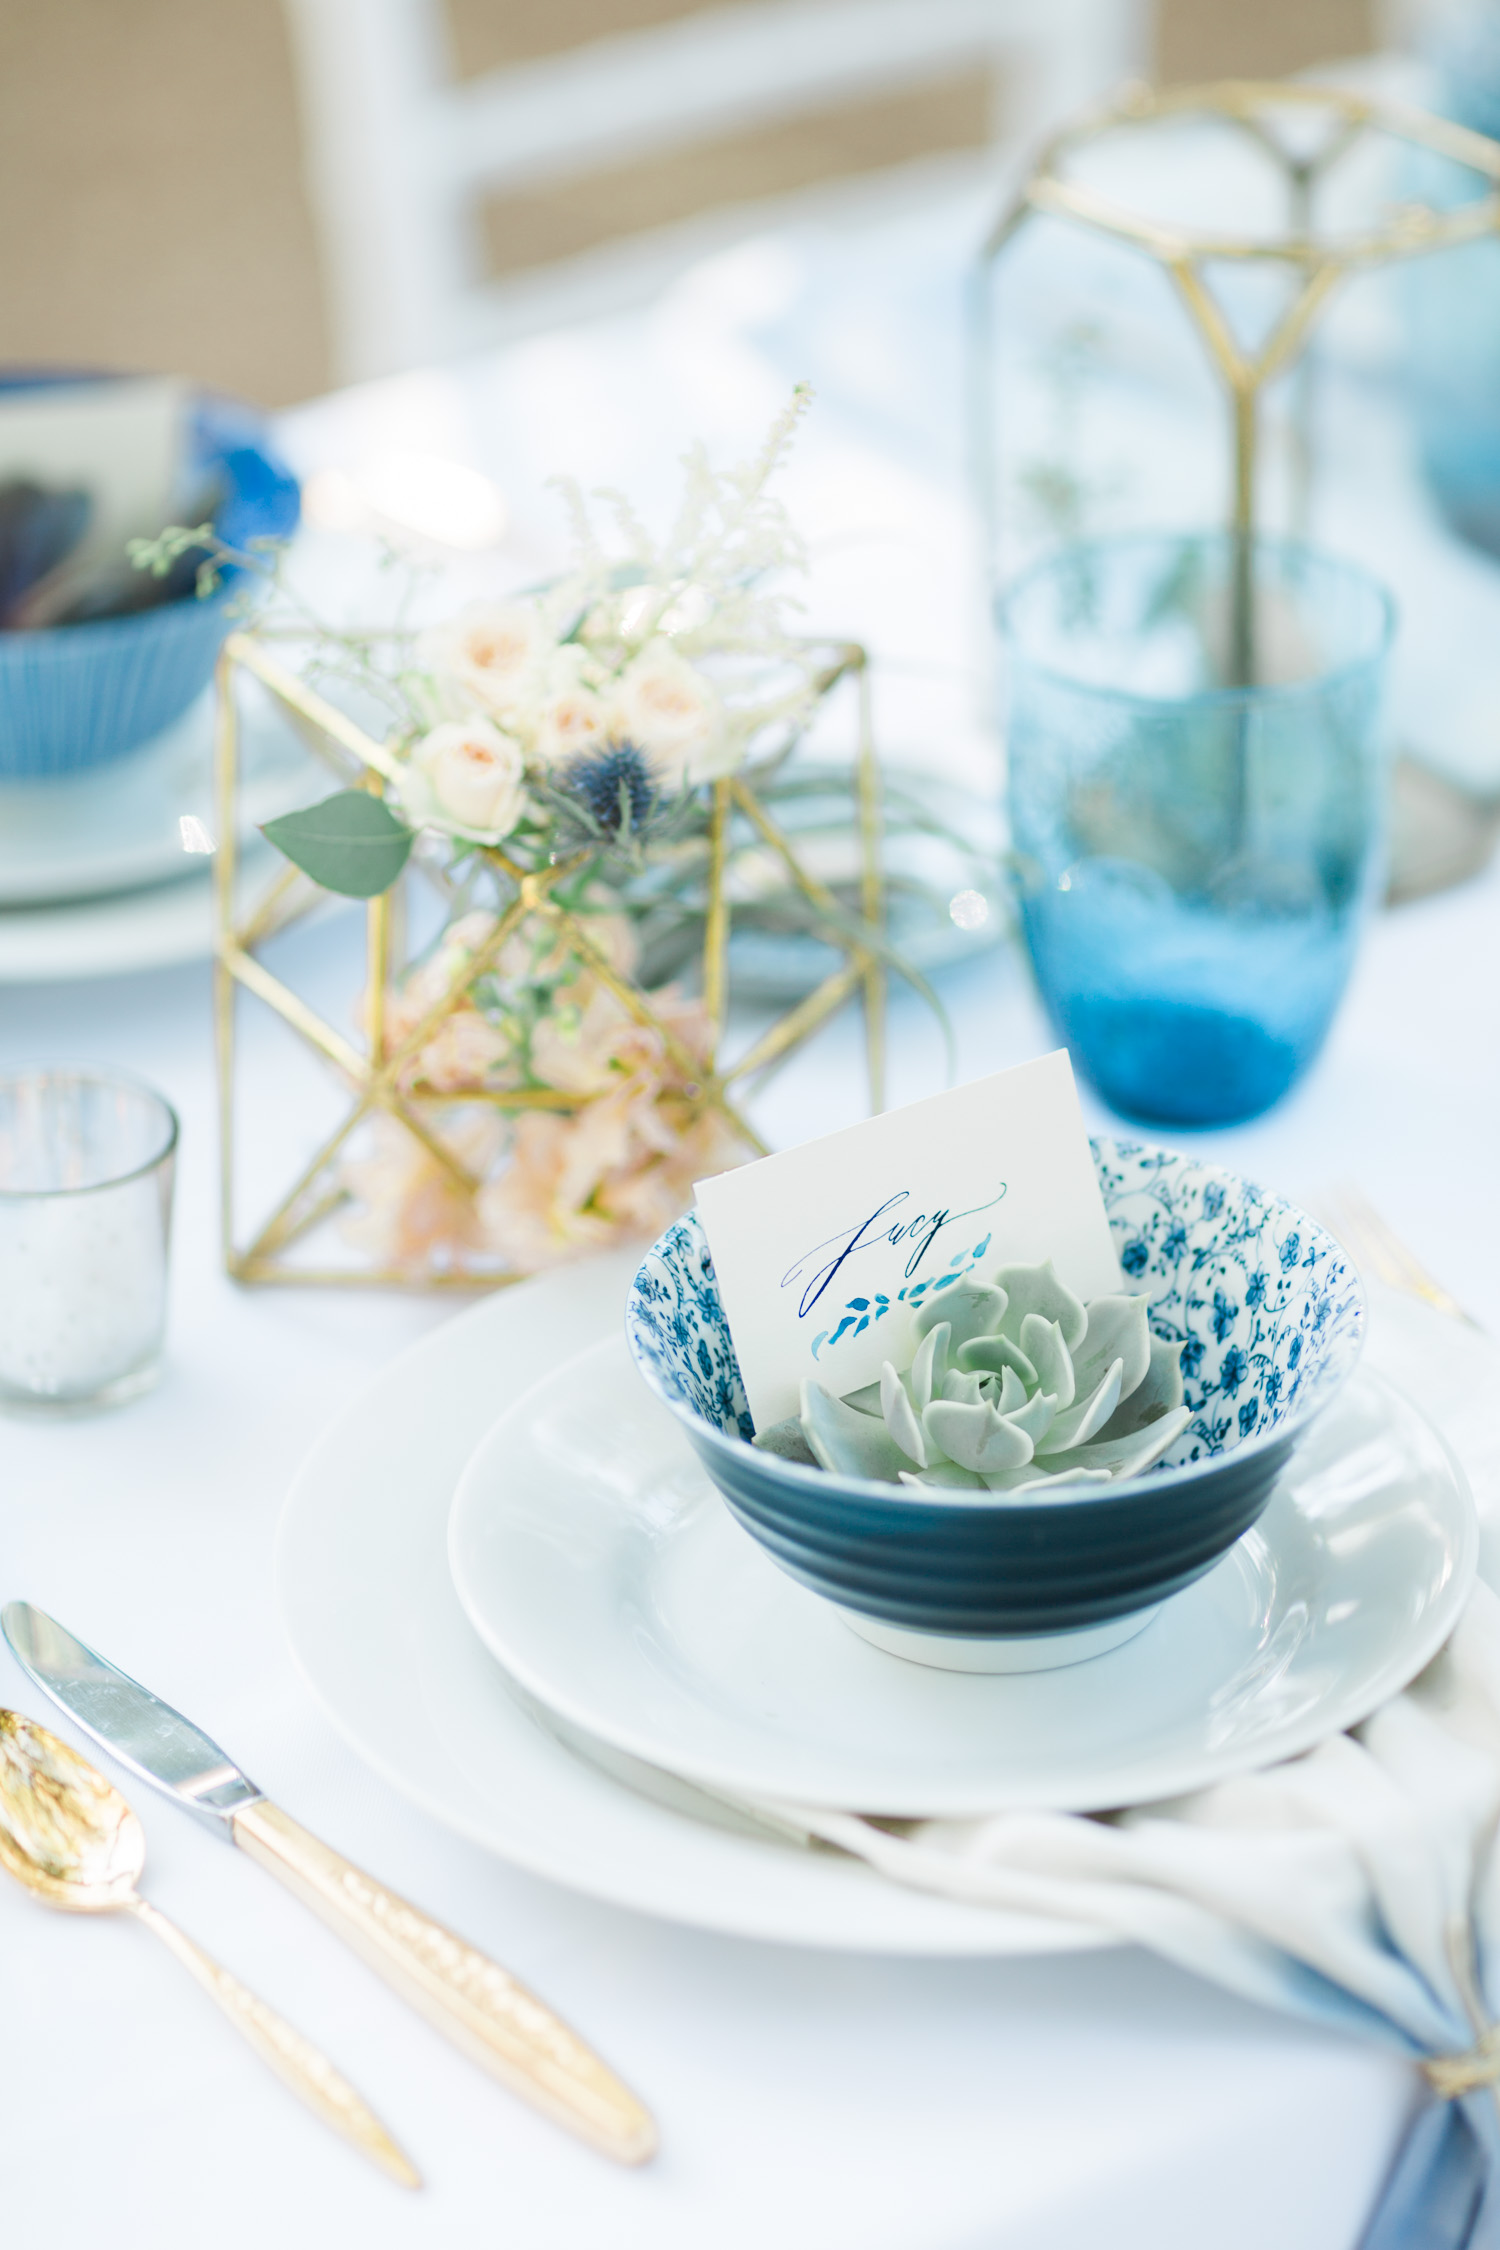 Indigo and gold place settings with stunning calligraphy by Betsy Dunlap